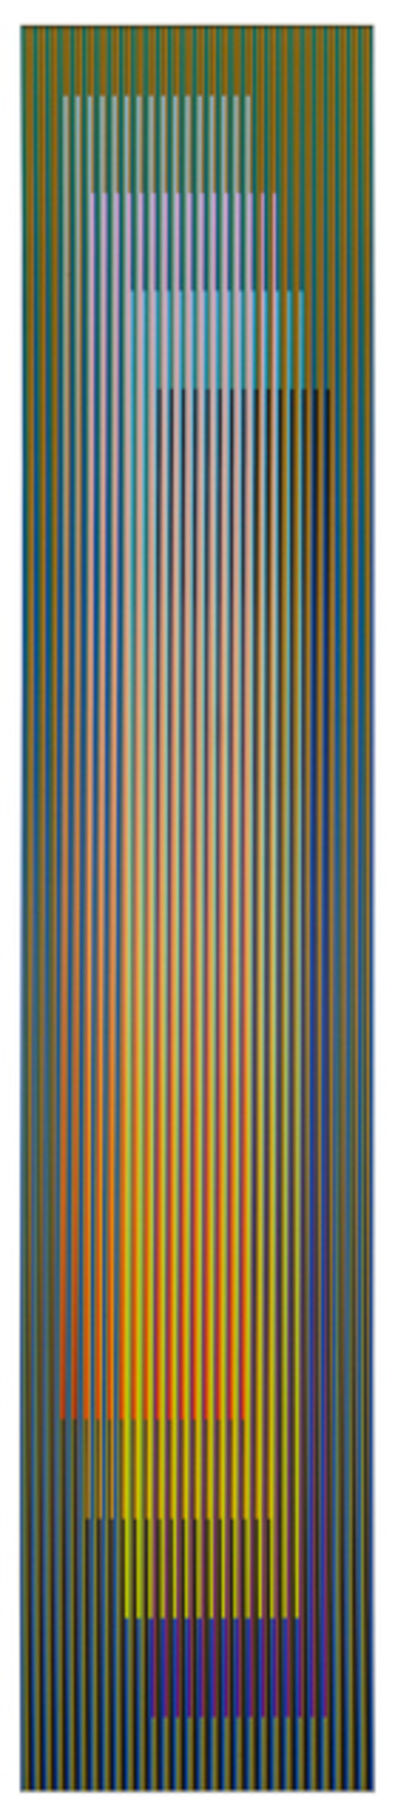 Carlos Cruz-Diez, 'Color aditivo serie larga Panam 1', 2011